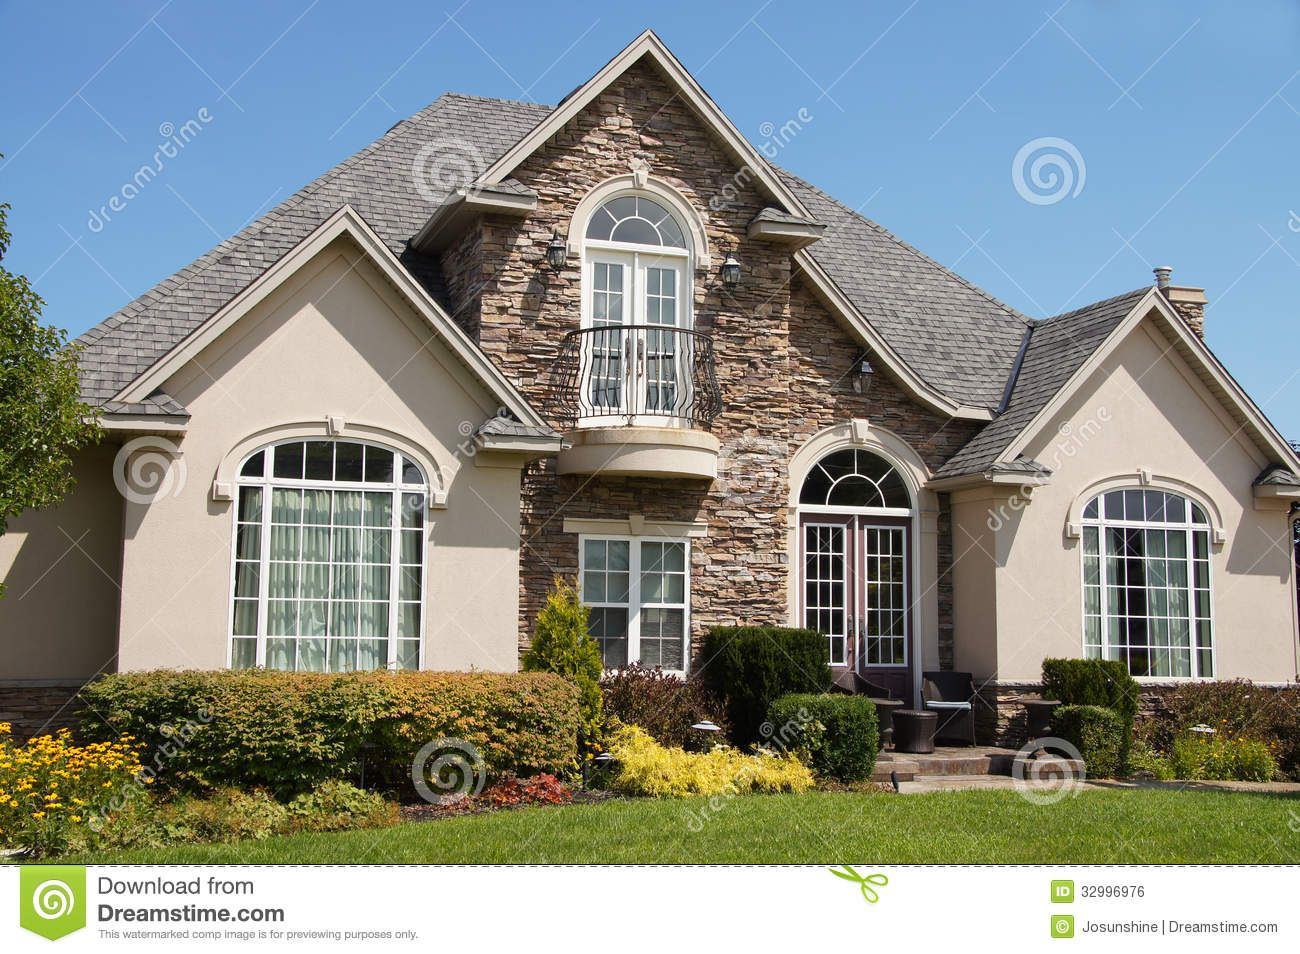 Design Stucco And Stone Homes stucco stone house pretty windows royalty free stock image image